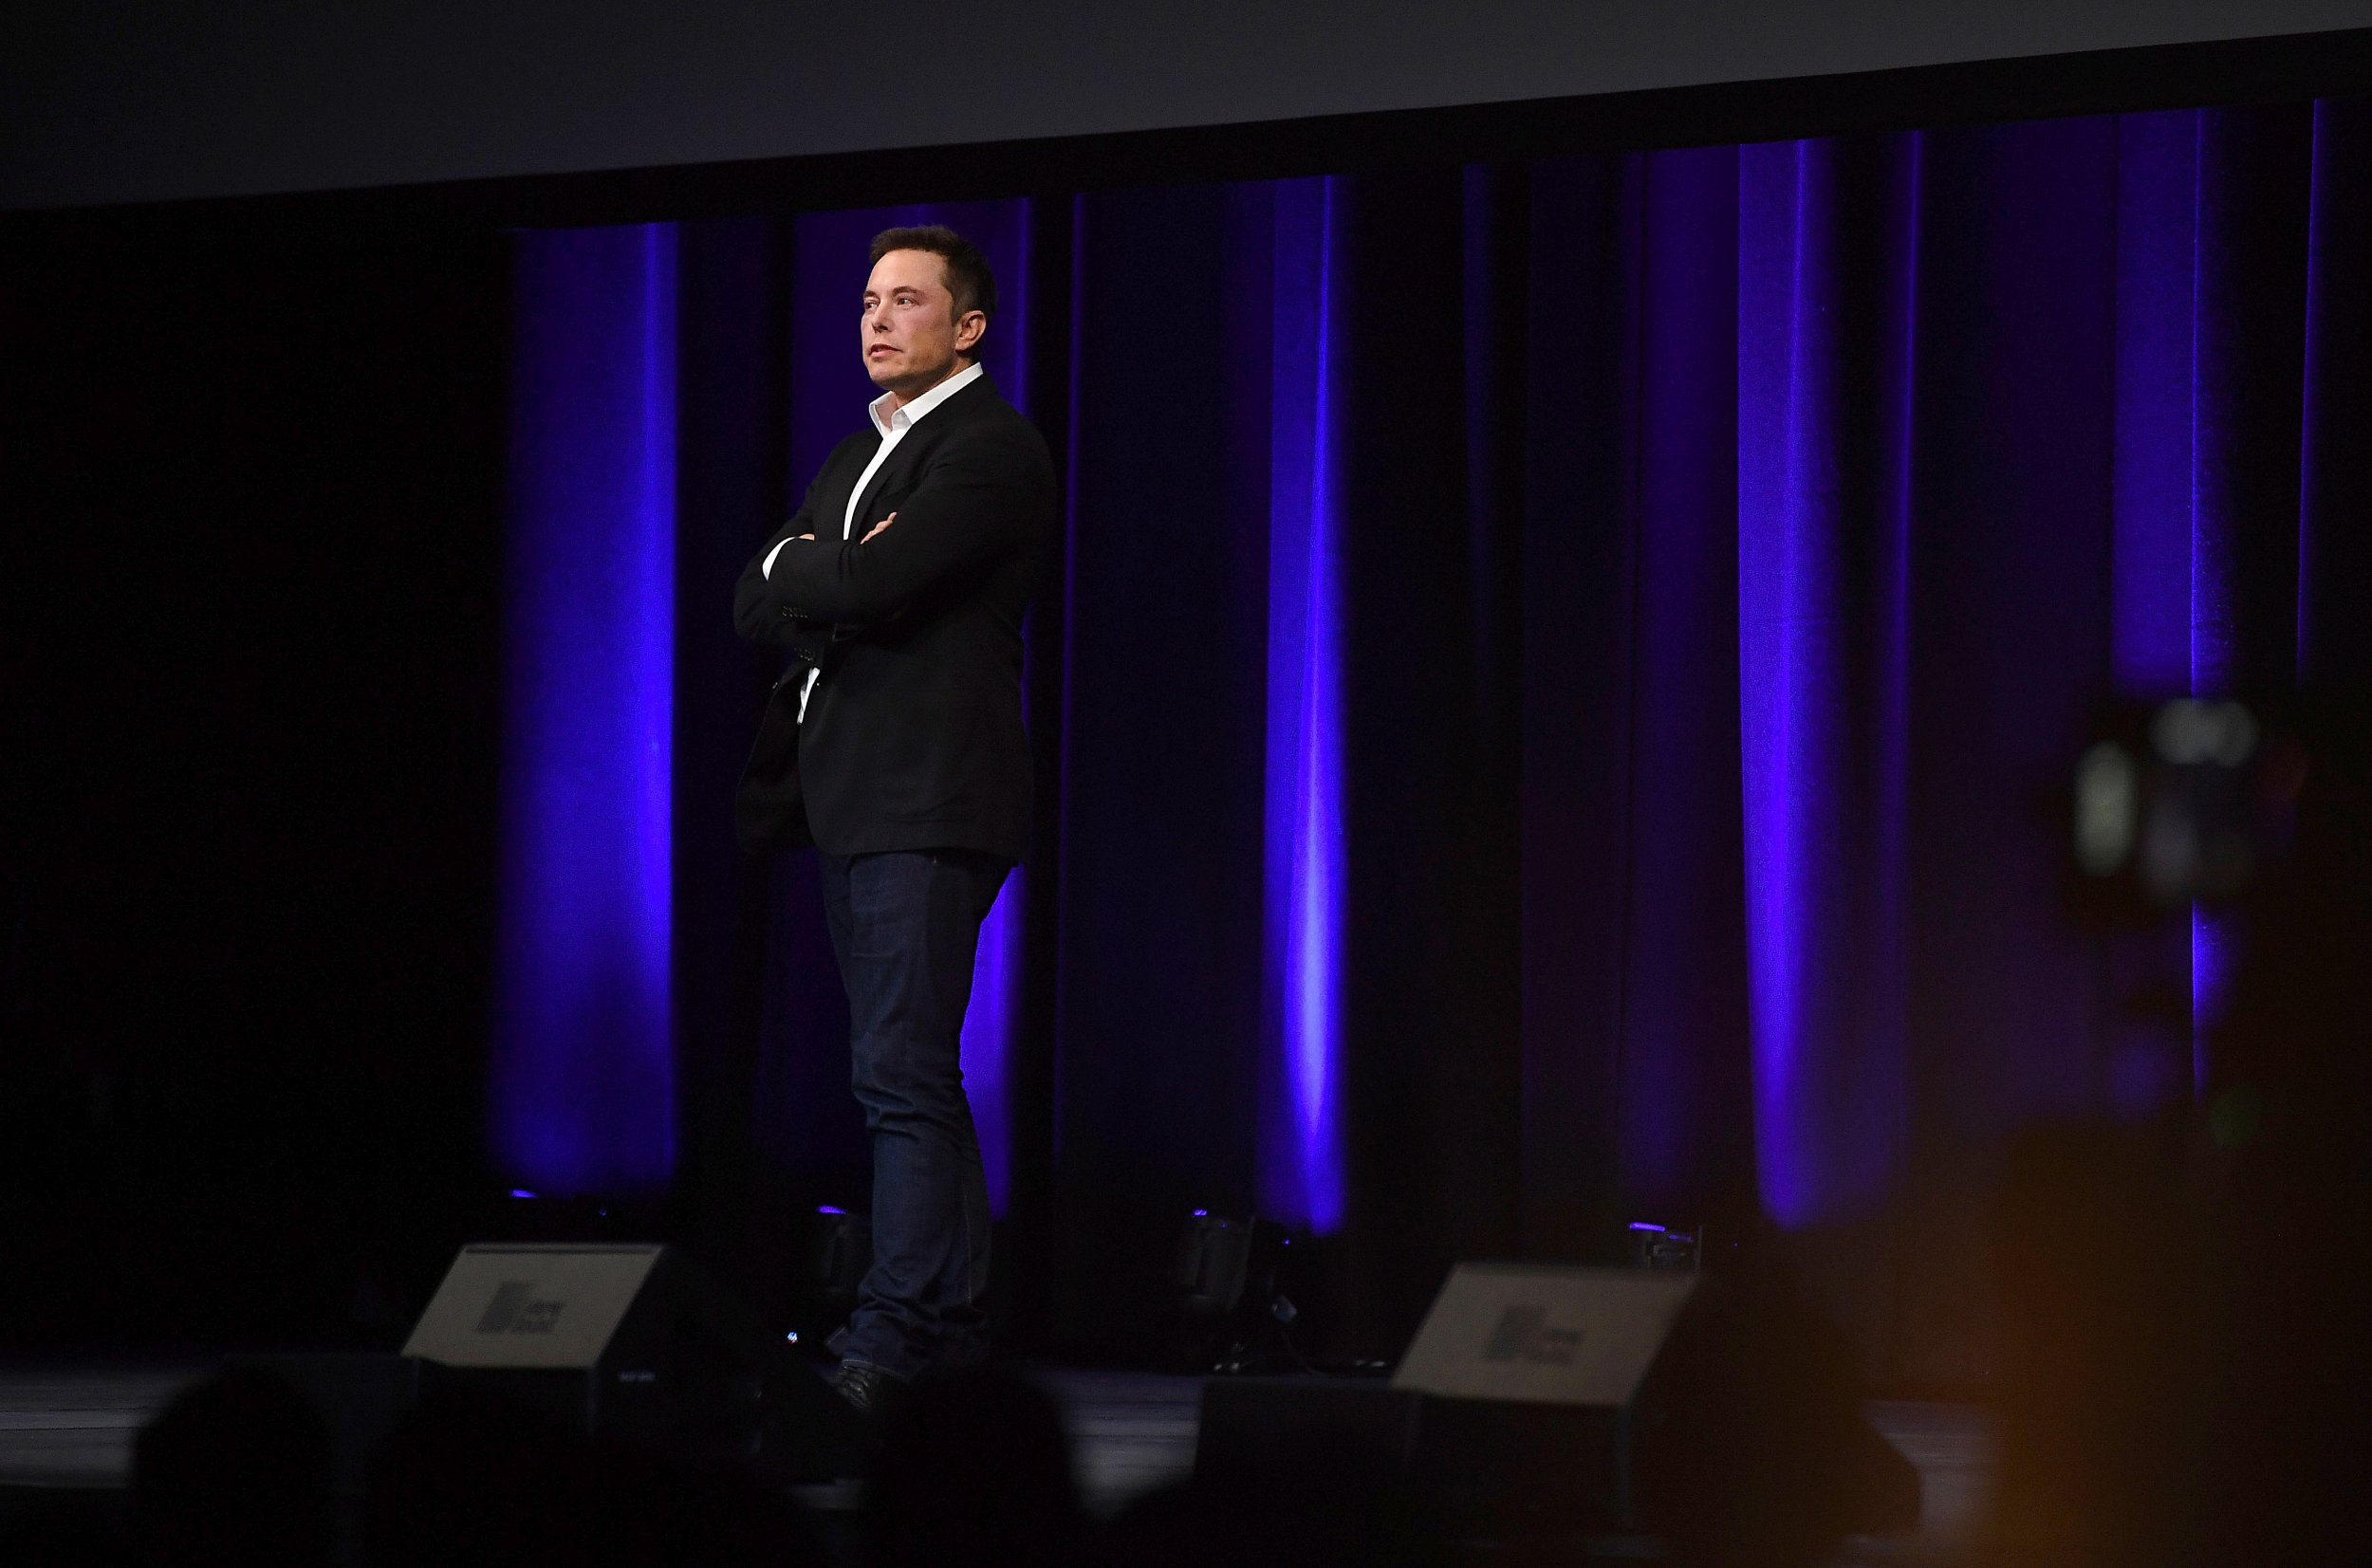 elon musk on stage arms folded